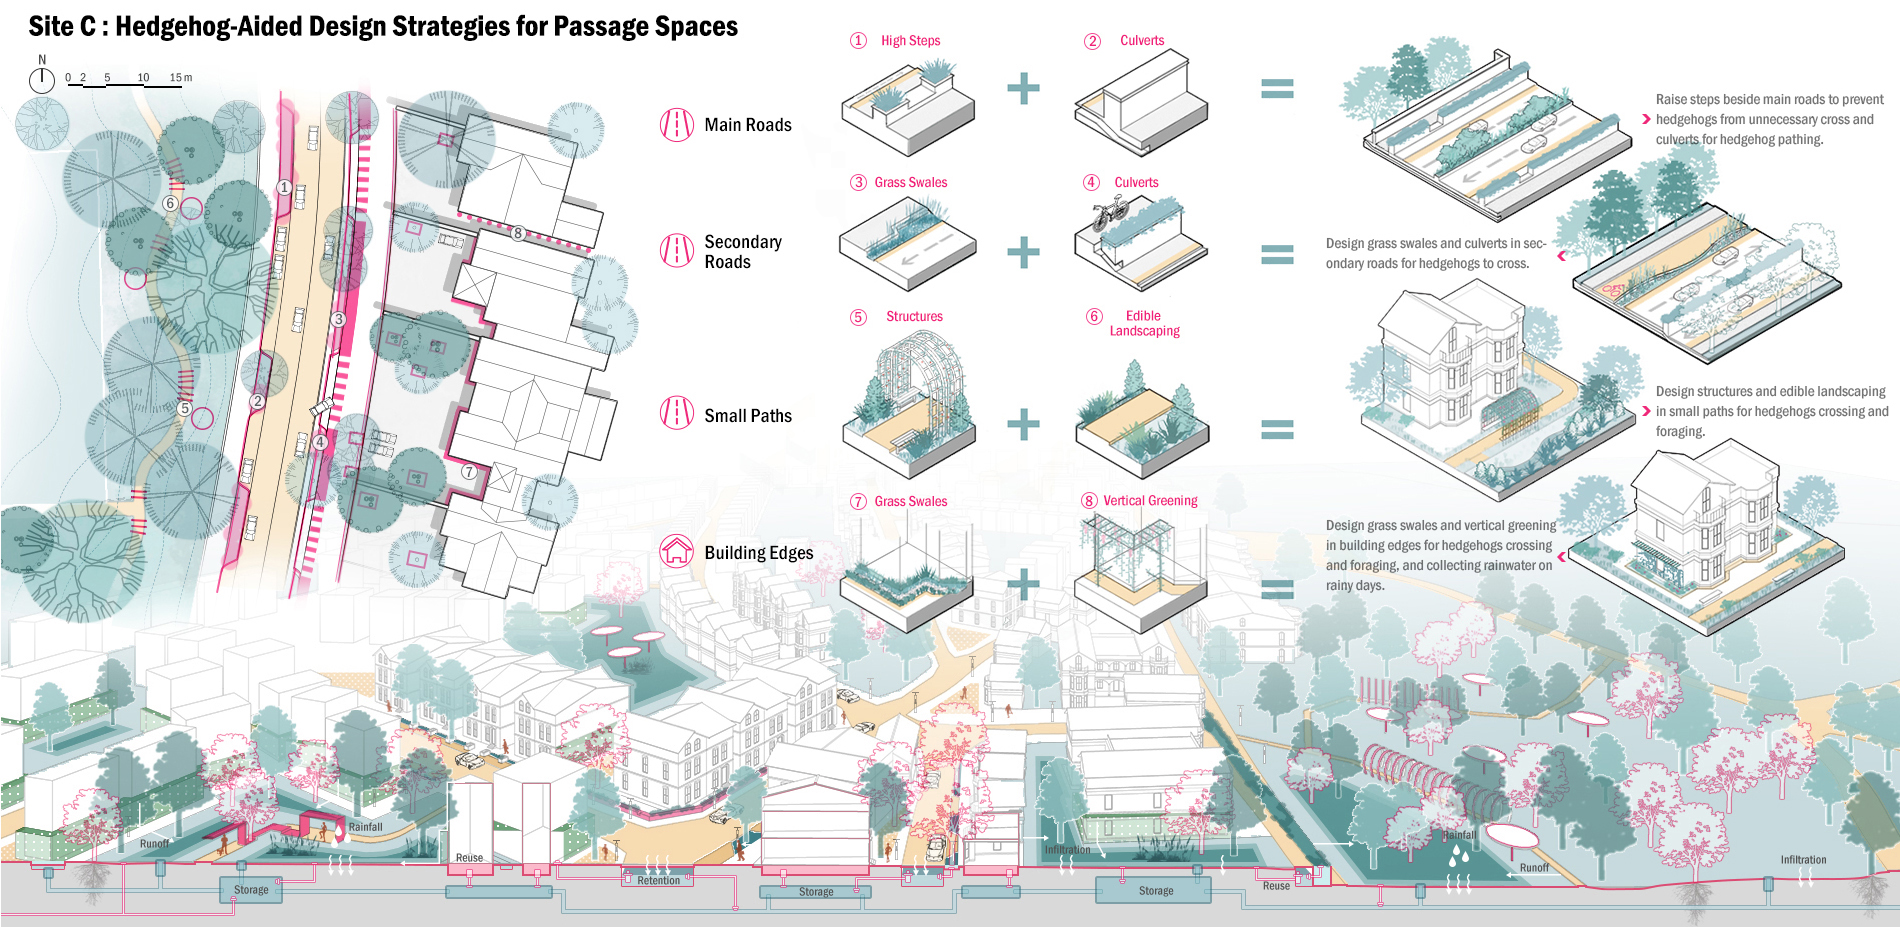 Site C: Hedgehog-Aided Design Strategies for Passage Spaces